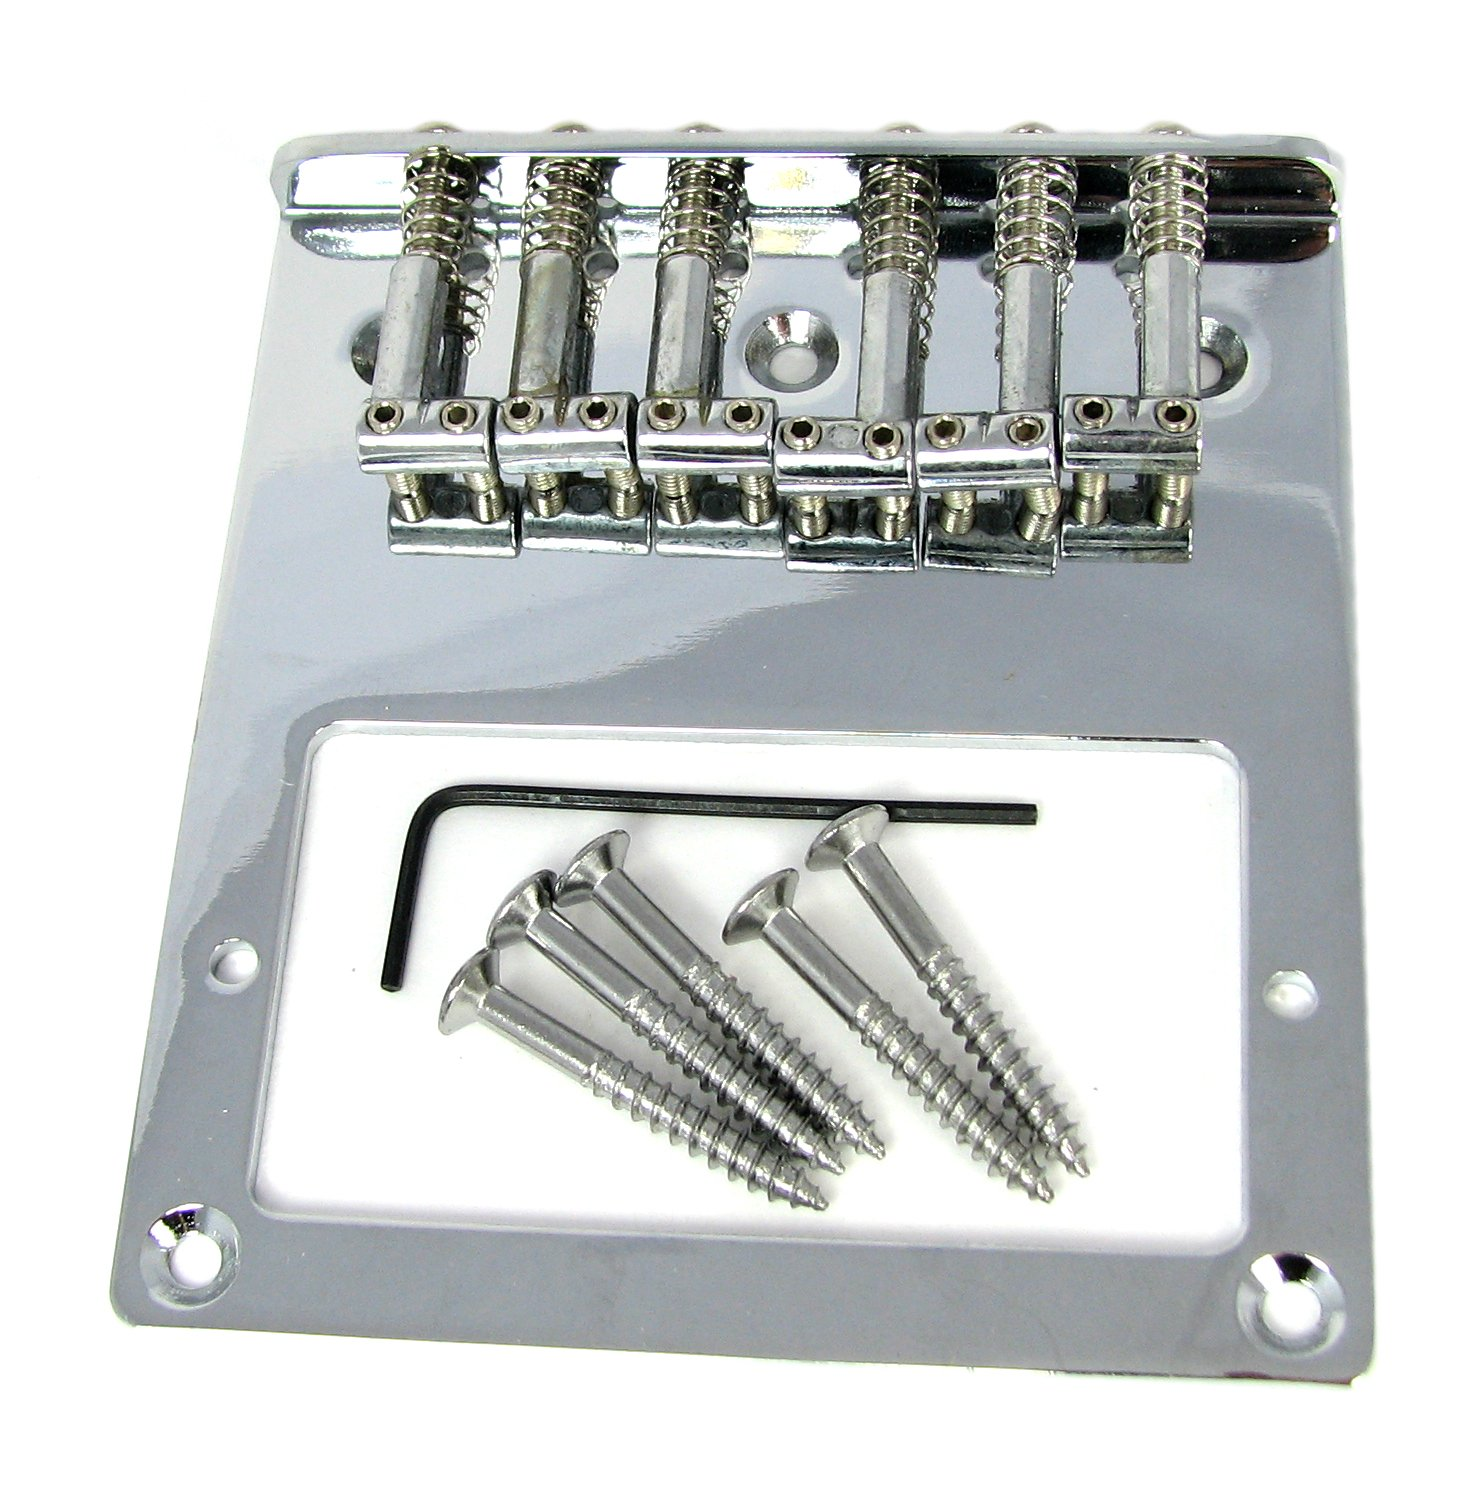 Telecaster(tm)-Style Top-Loading Chrome Electric Guitar Bridge Plate for Humbuckers C. B. Gitty Crafter Supply FBA_31-067-01